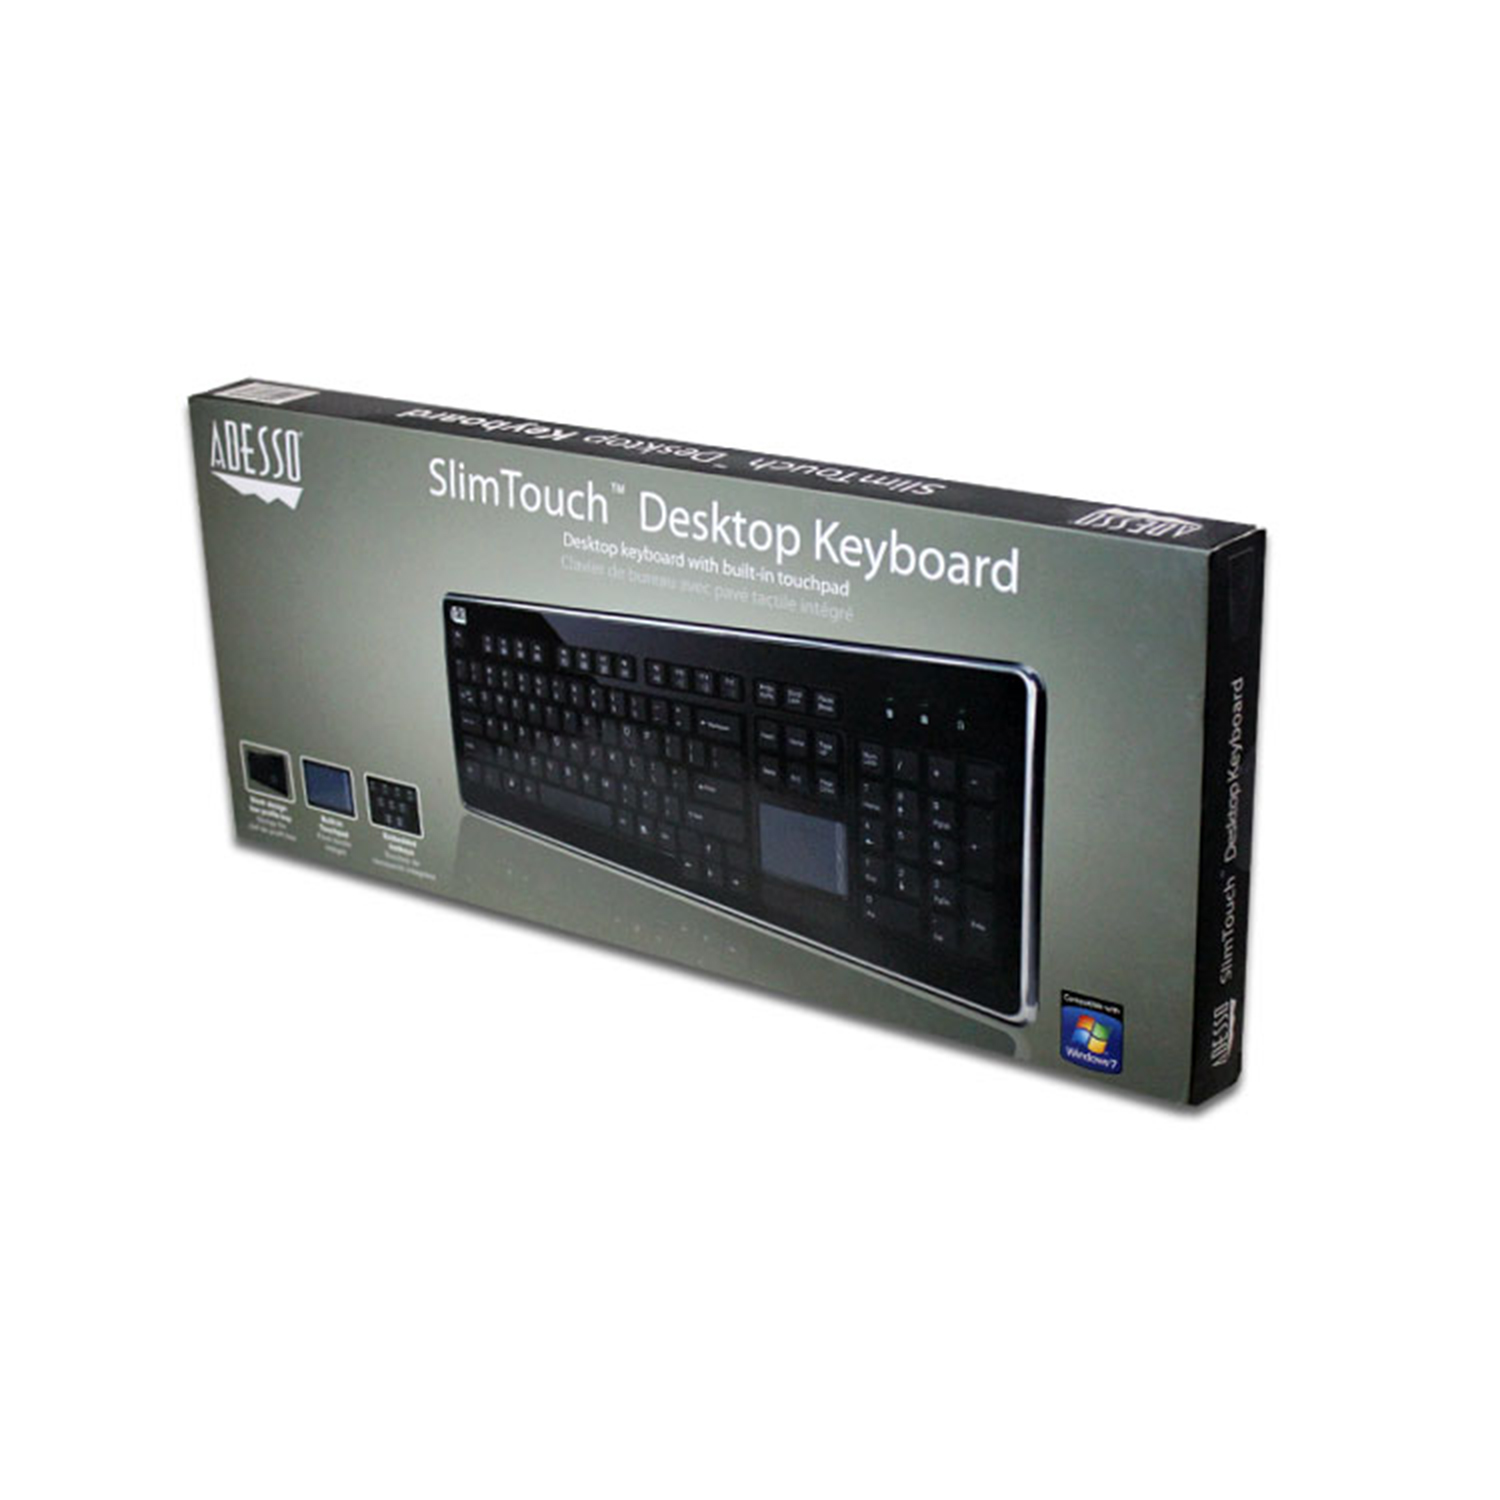 slimtouch 440 desktop touchpad keyboard adesso inc your